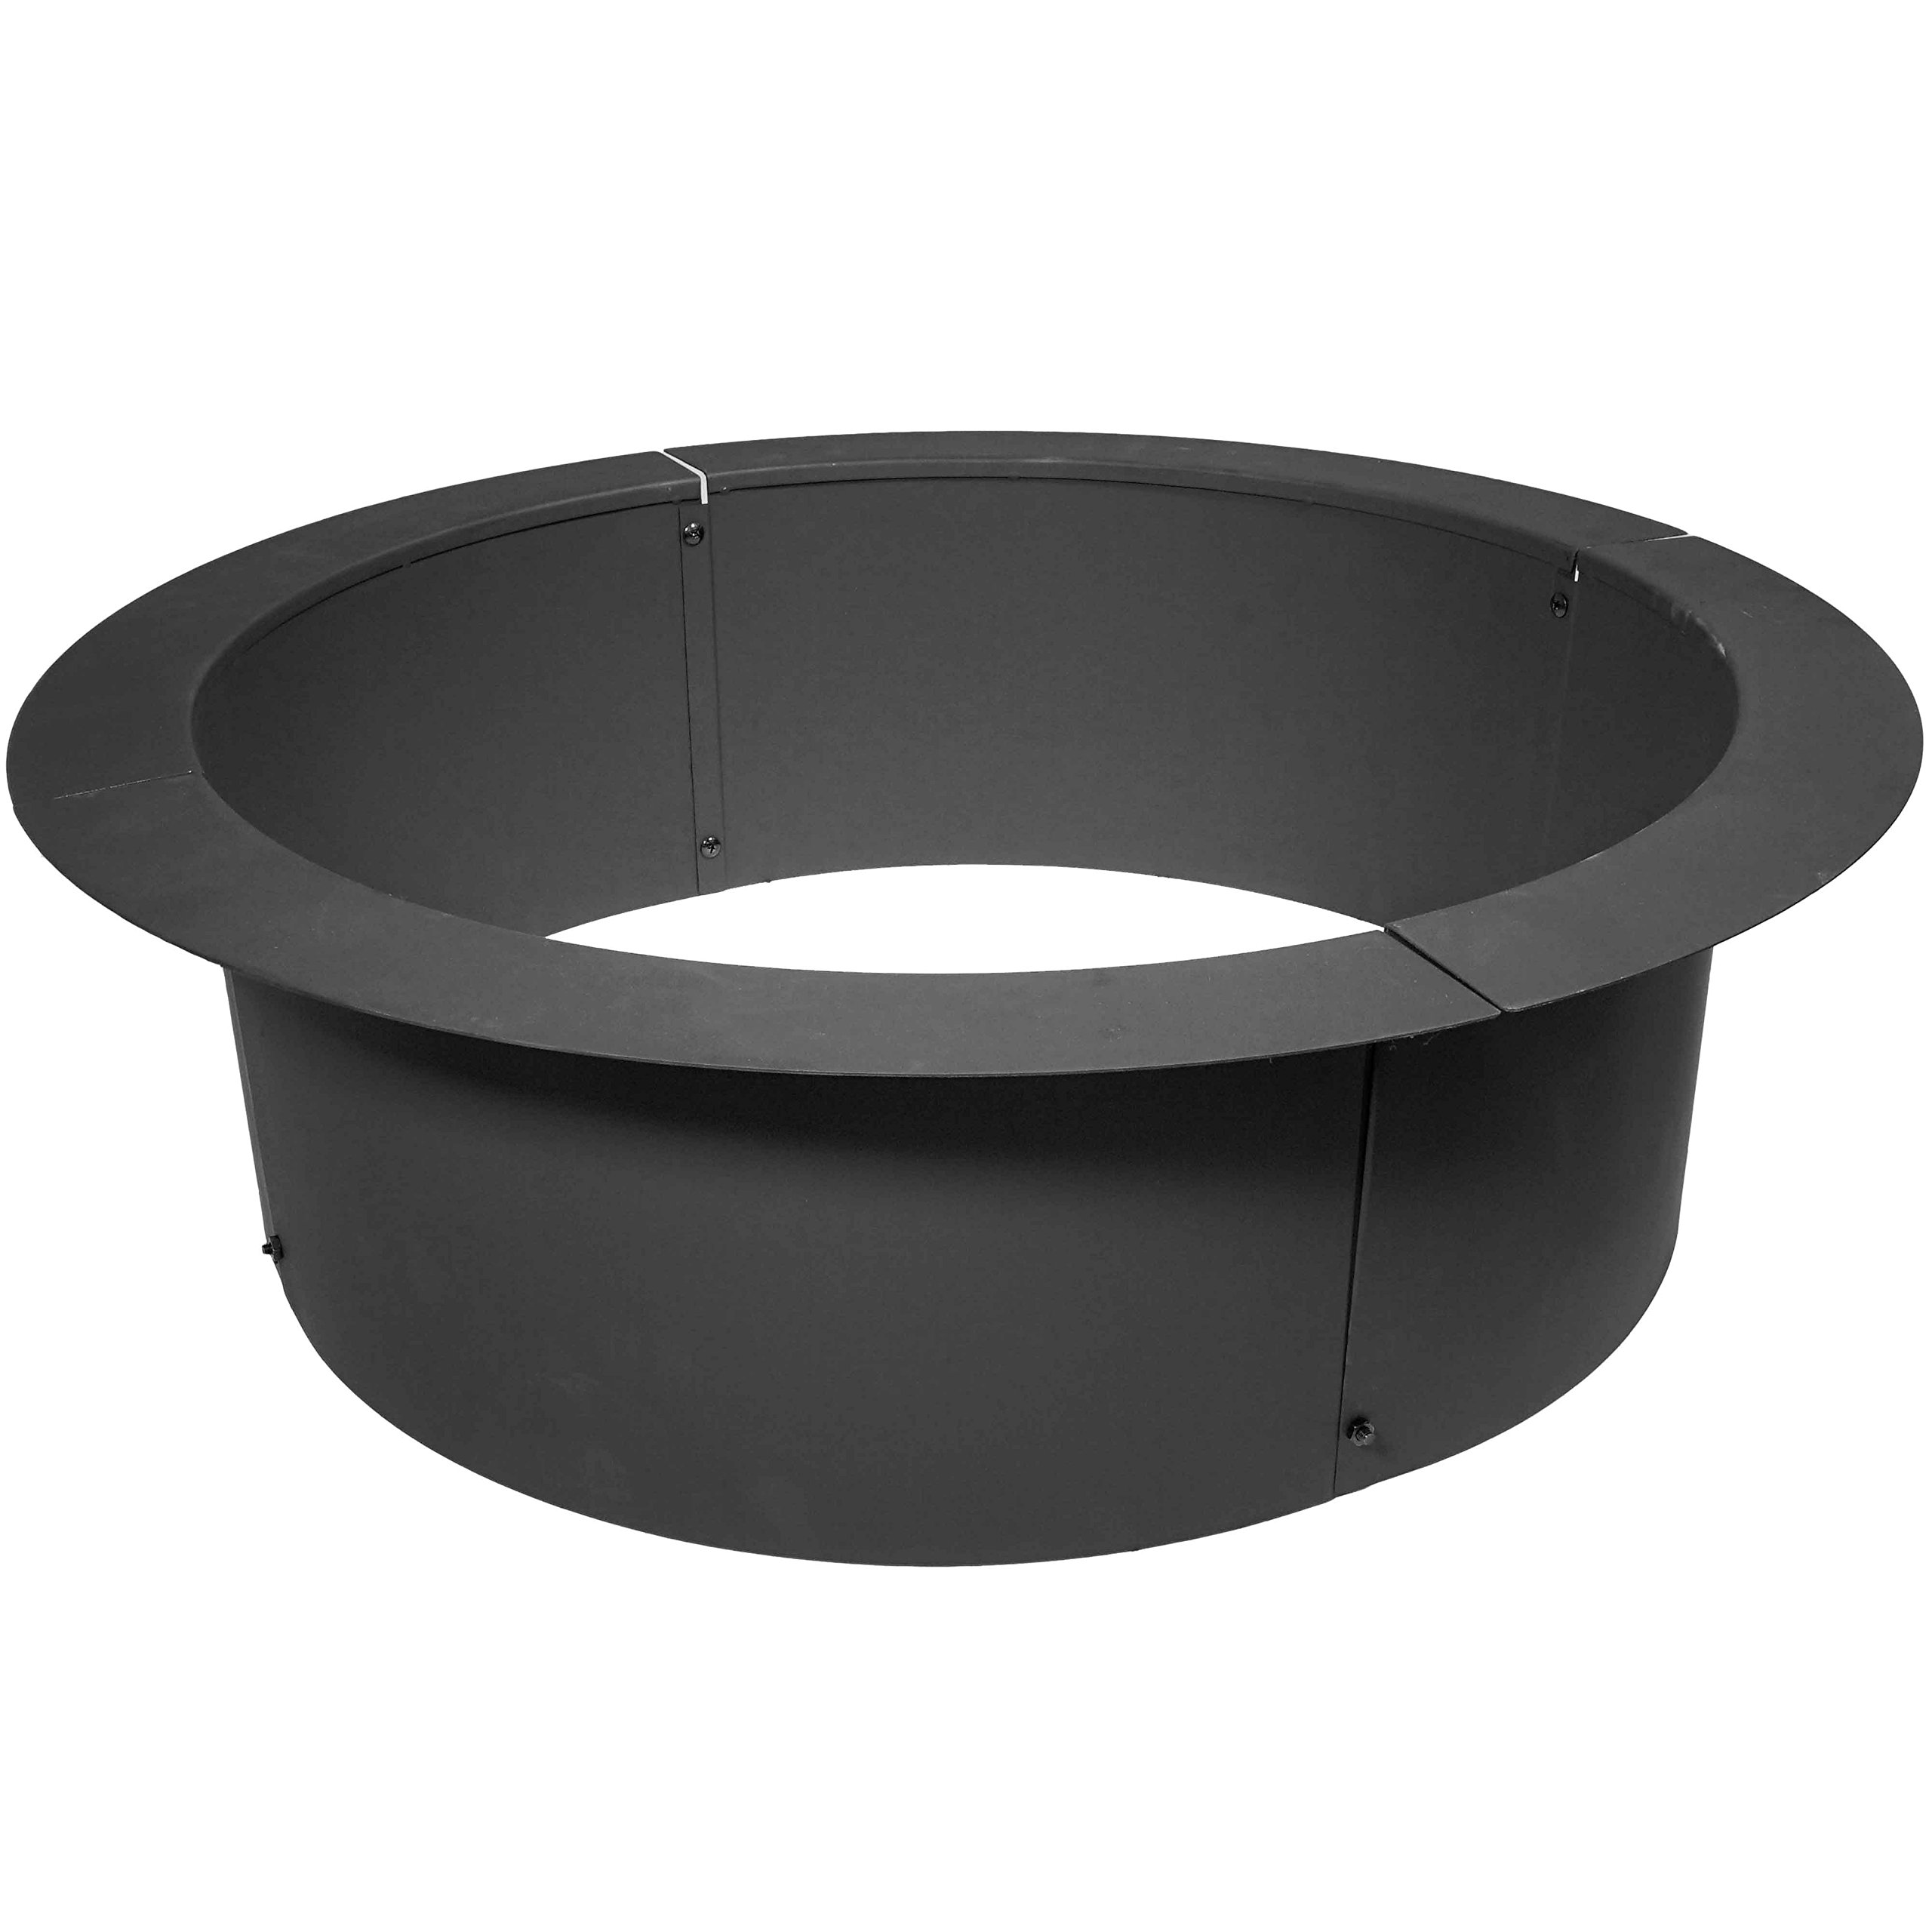 Titan 33'' Diameter Steel Fire Pit Liner Ring Heavy Duty DIY In-Ground Outdoor Build Your Own by Titan Outdoors